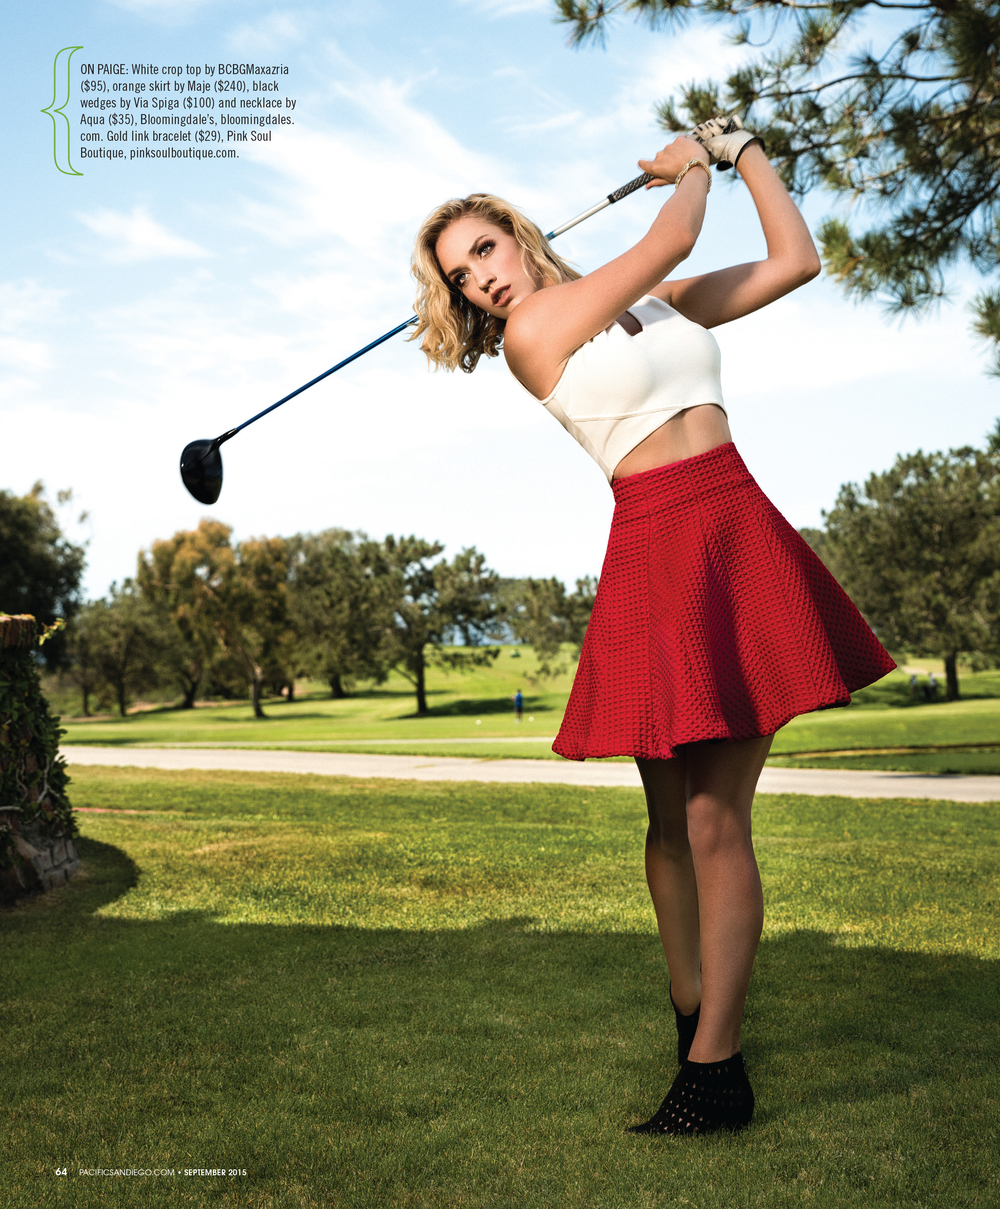 201509 Pacific San Diego Magazine September Page 1.jpg